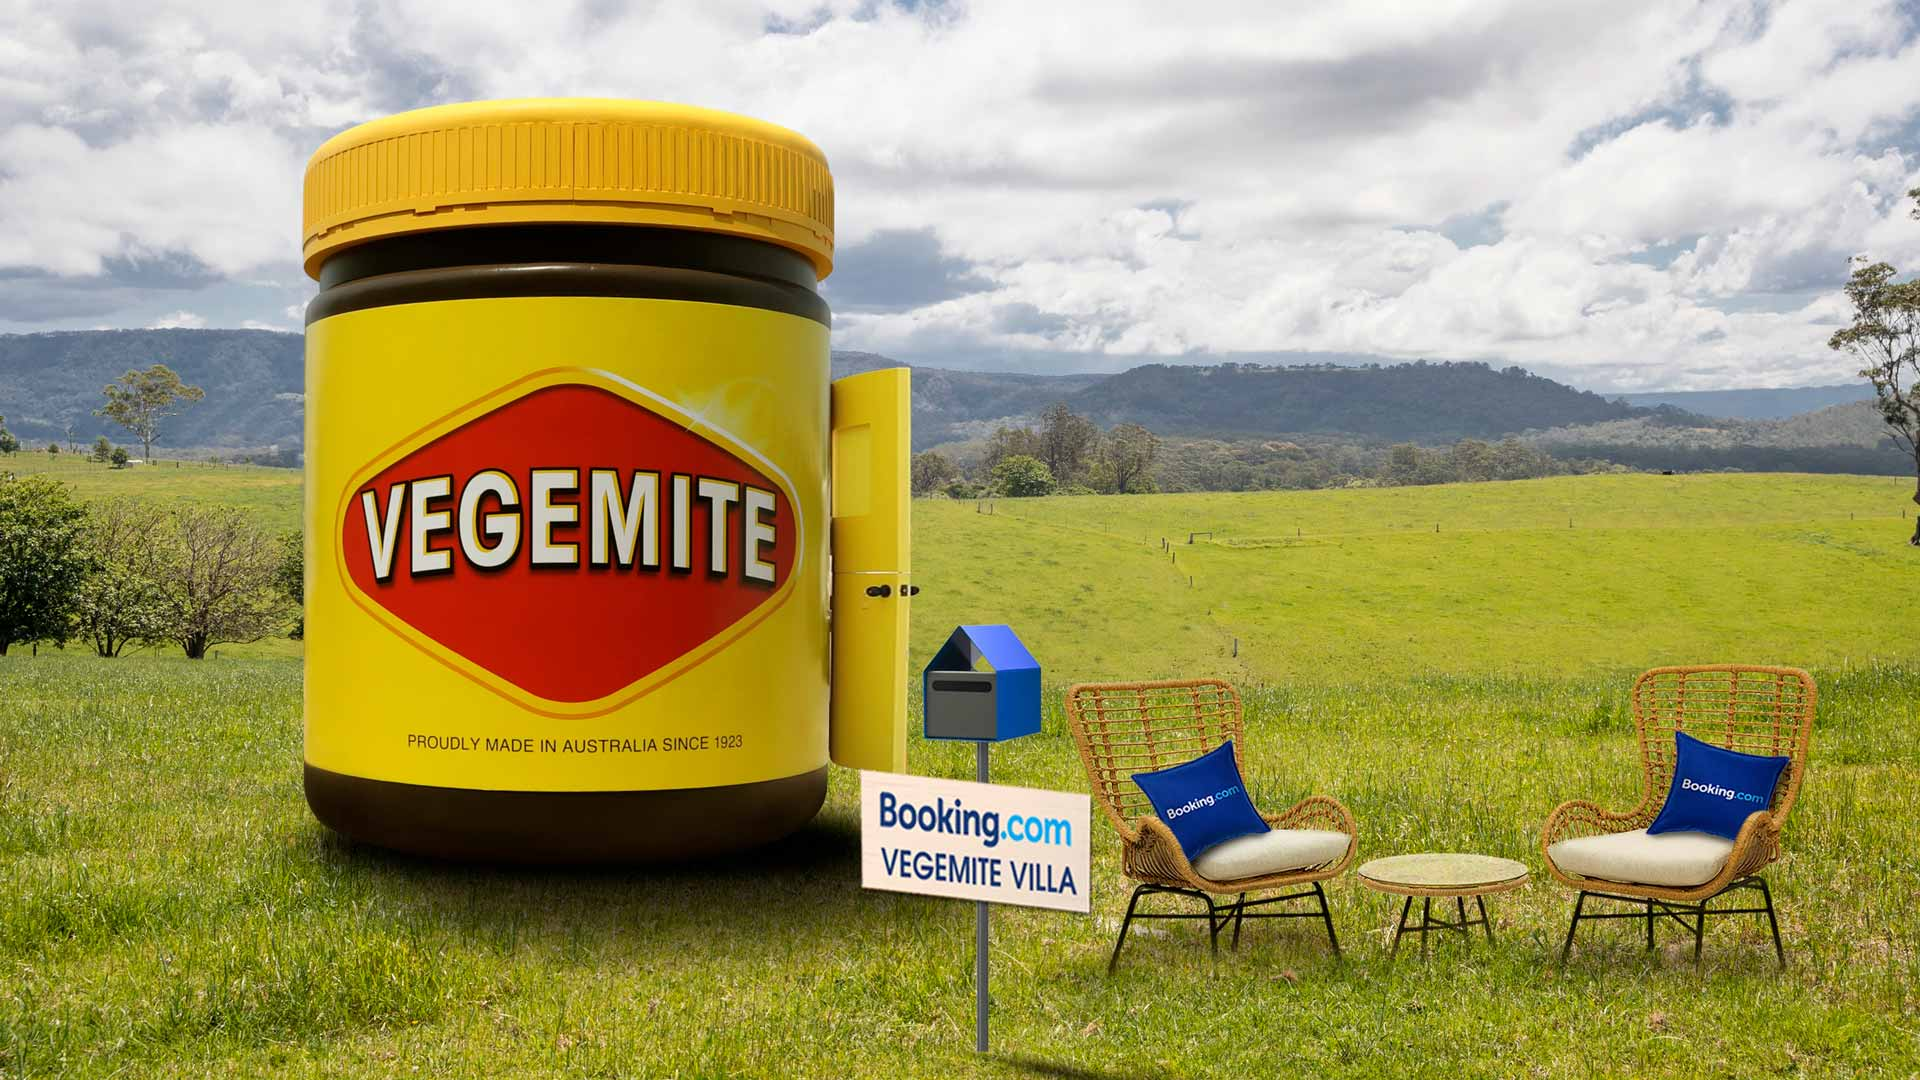 A Vegemite Jar-Shaped Tiny House Is Popping Up in NSW